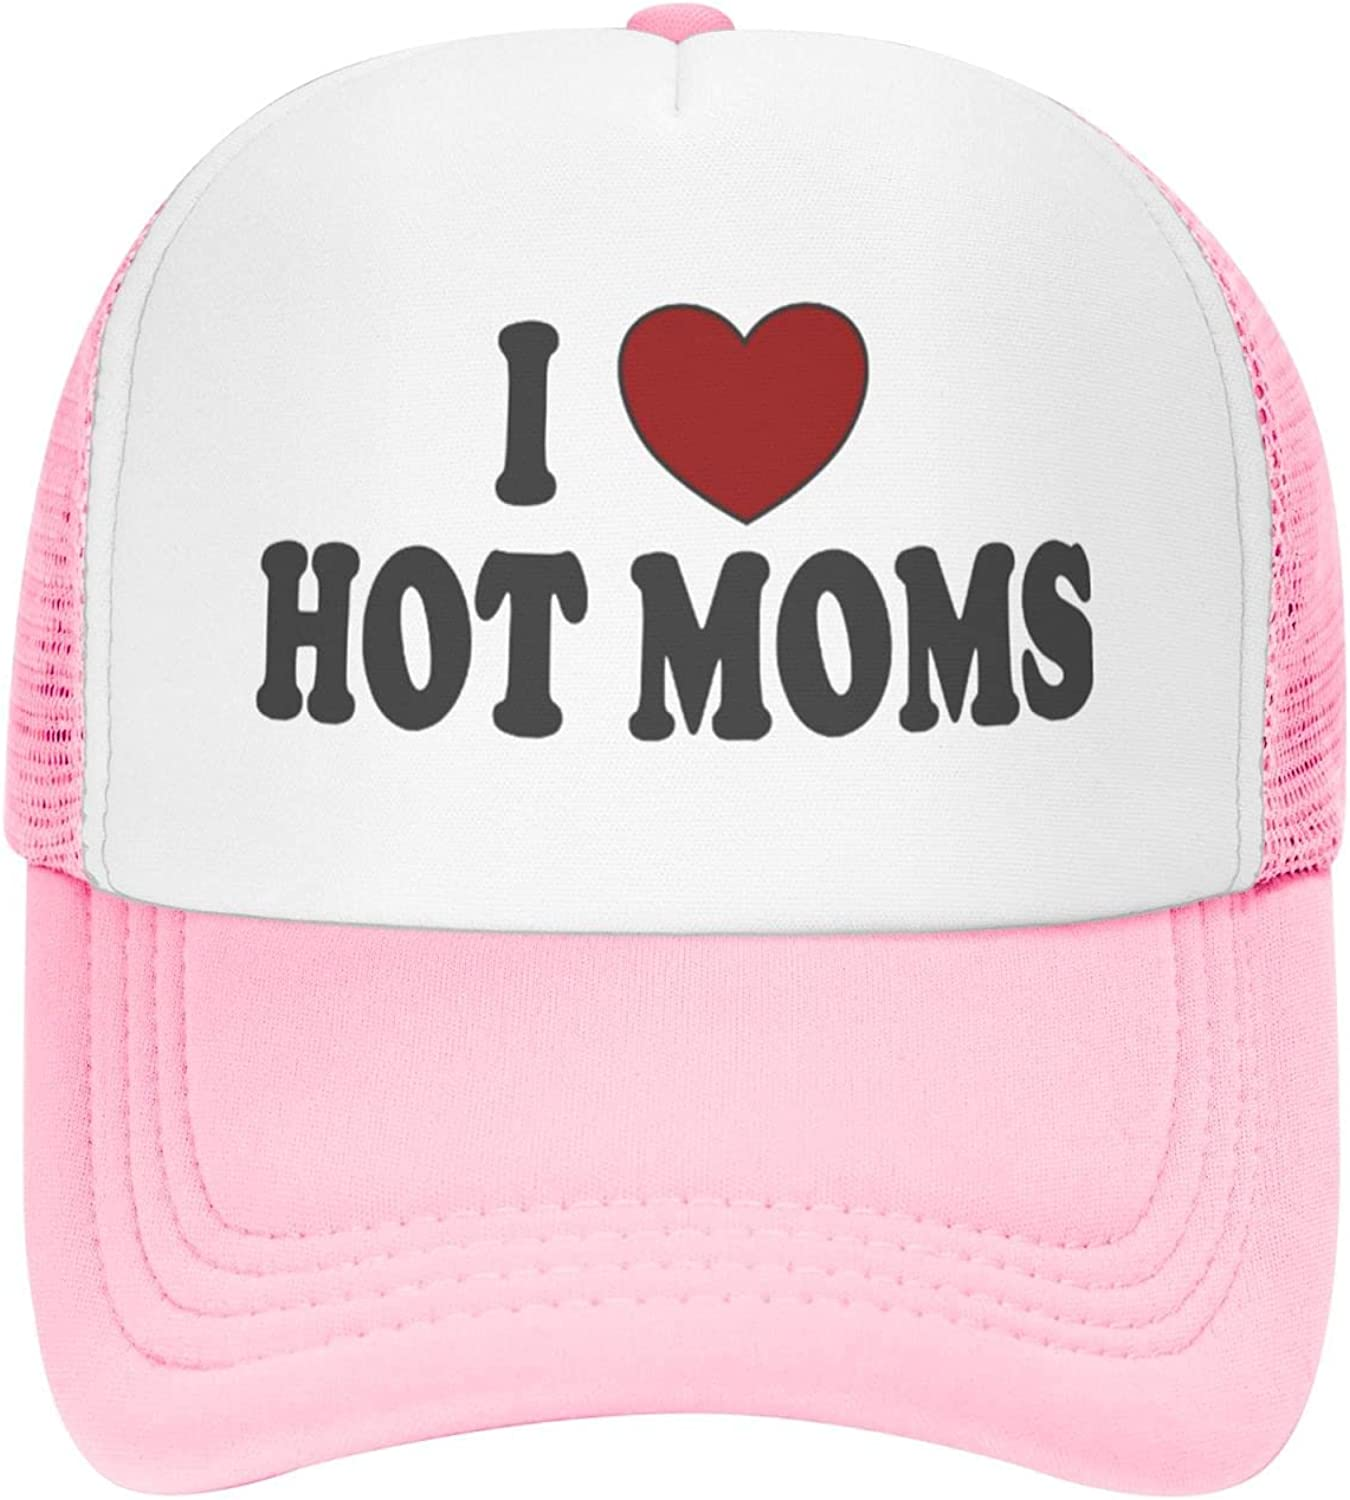 Unisex Baseball Cap I Heart Hot Moms Fitted Hat Adjustable Snapback Fashion and Comfortable,Funny